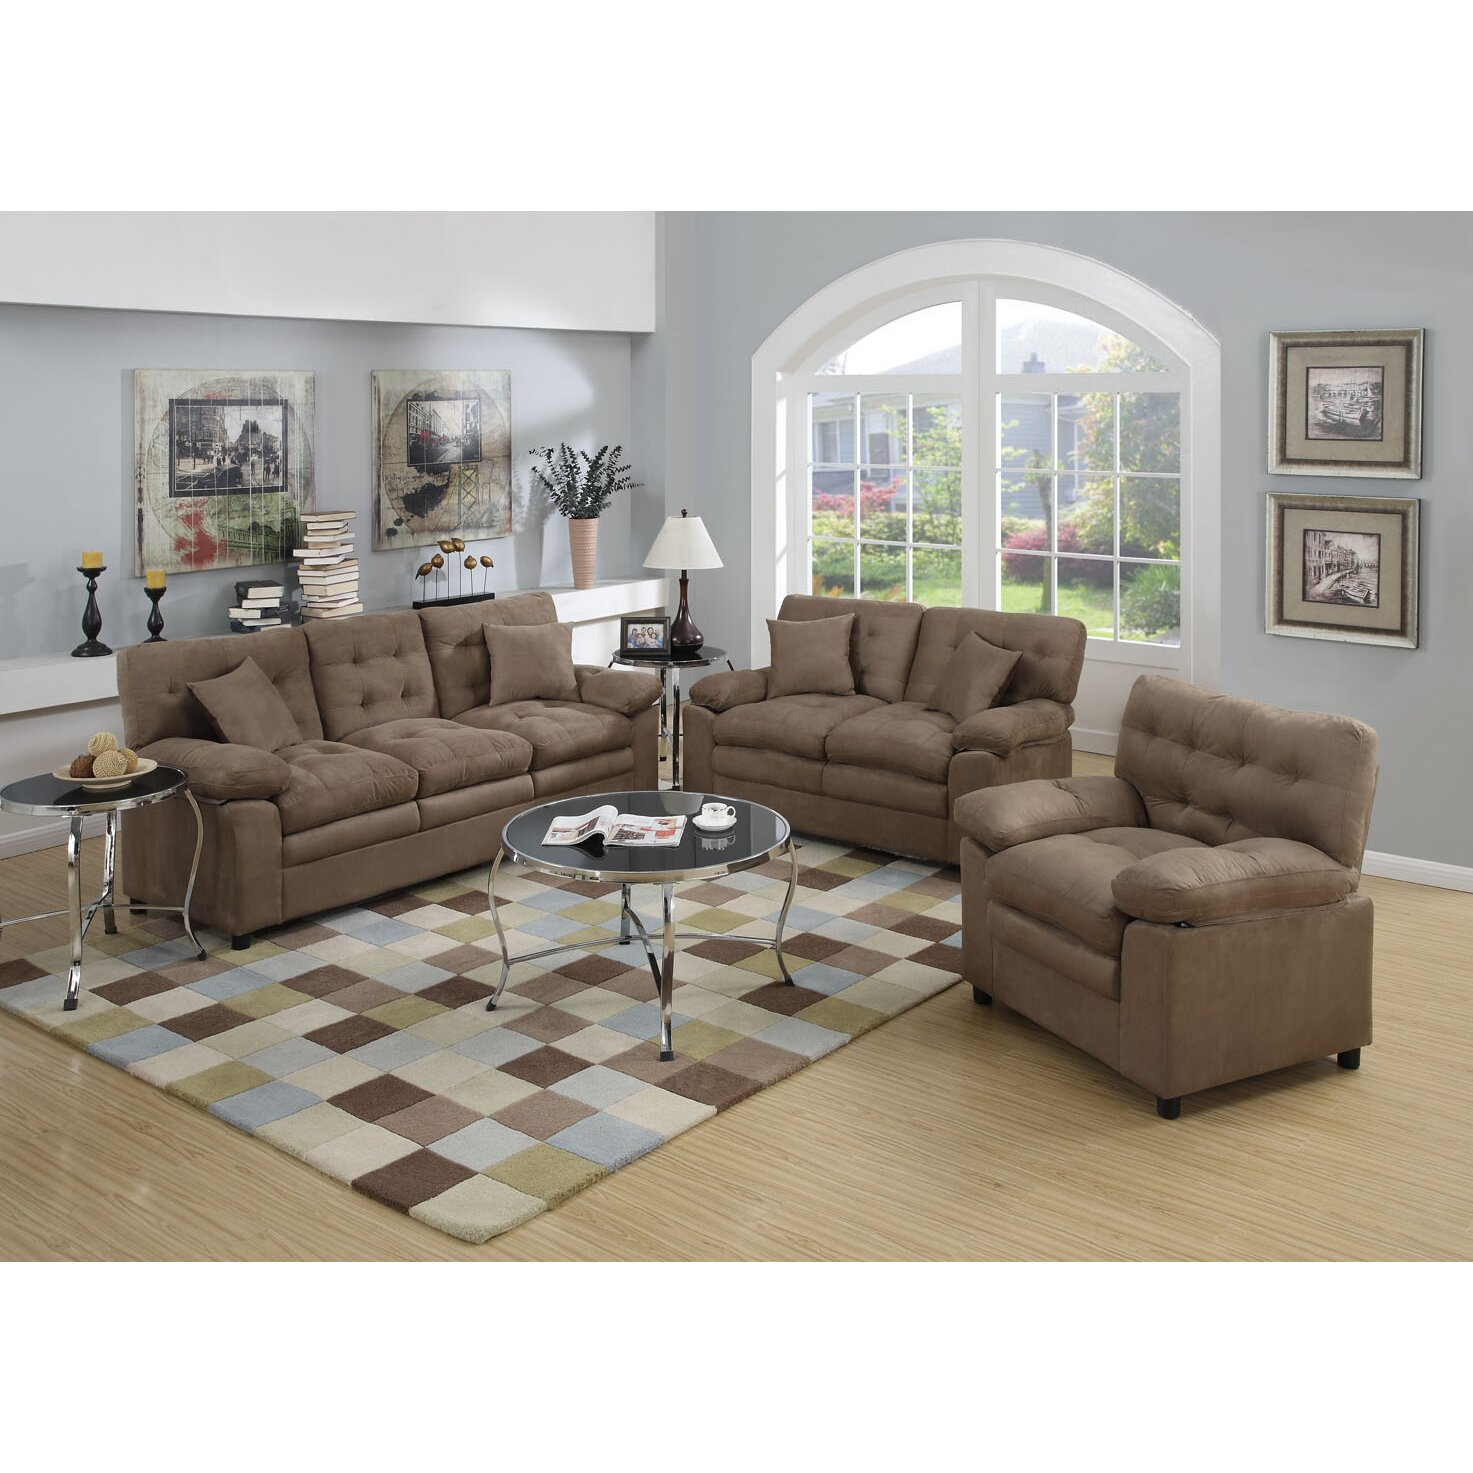 Poundex bobkona colona 3 piece living room set reviews for Living room furniture collections